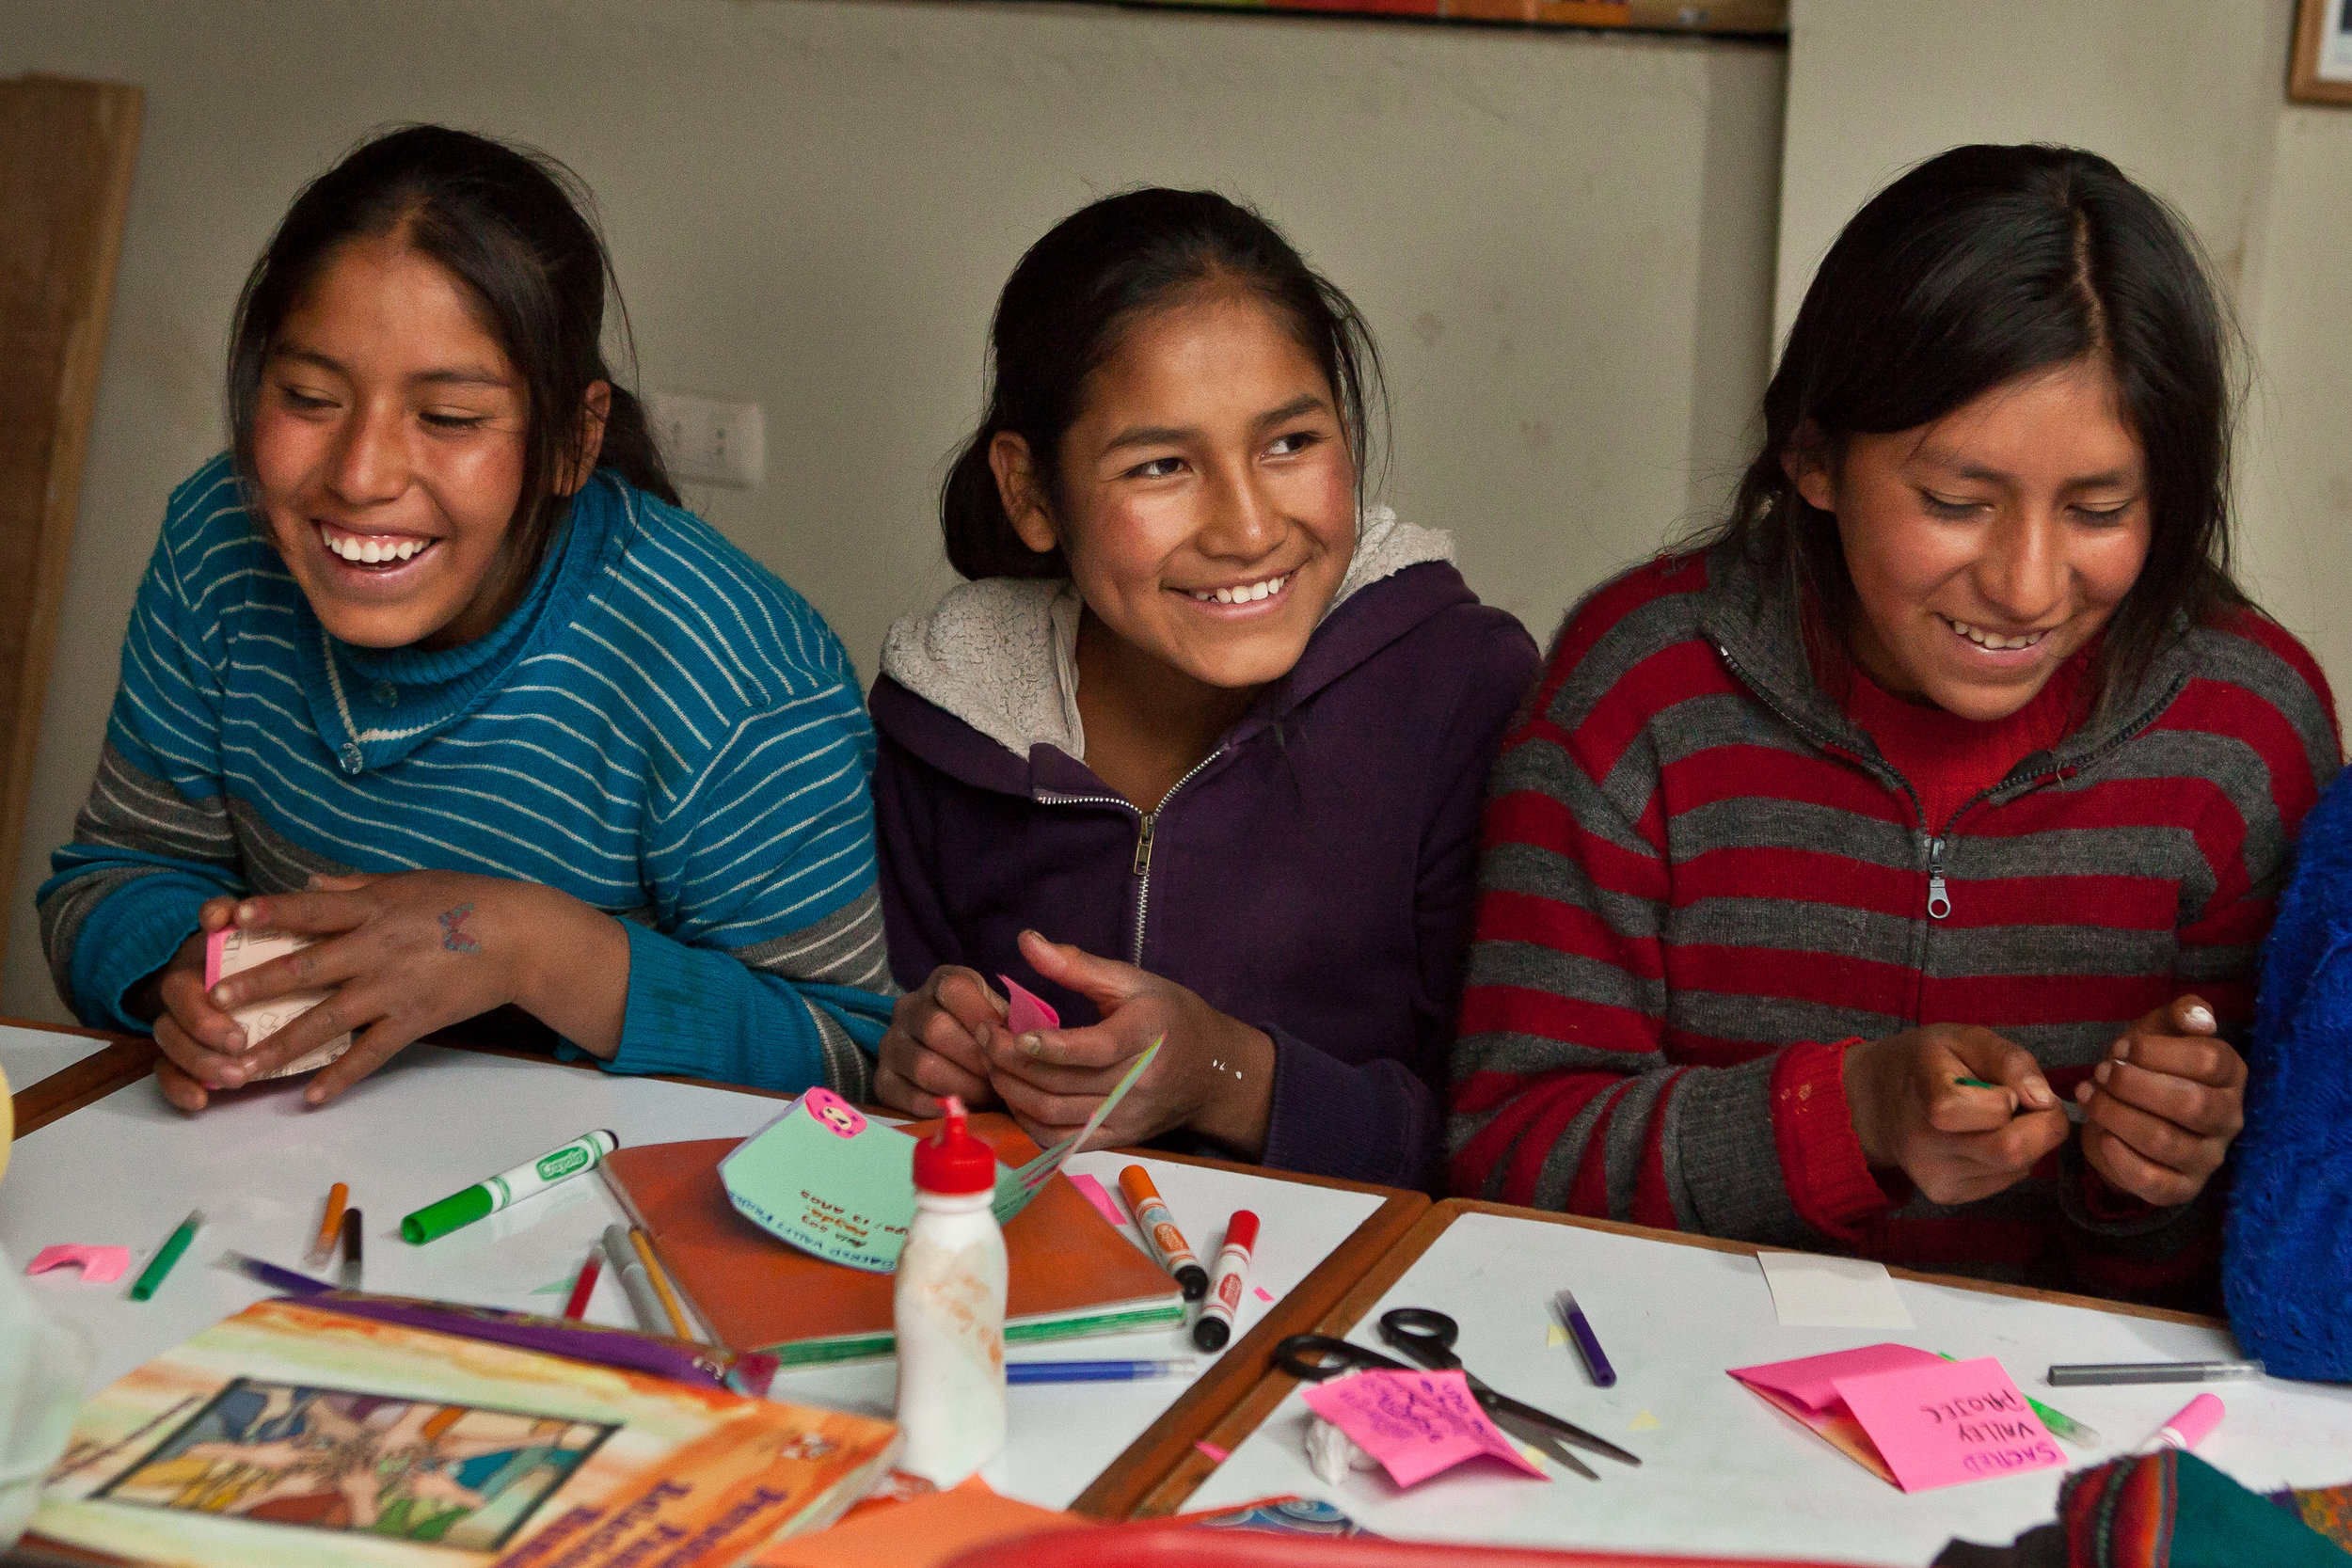 Peruvian She's the First Scholars Yakeline, Nayda, and Yaneth make cards for STF Scholars in Guatemala!